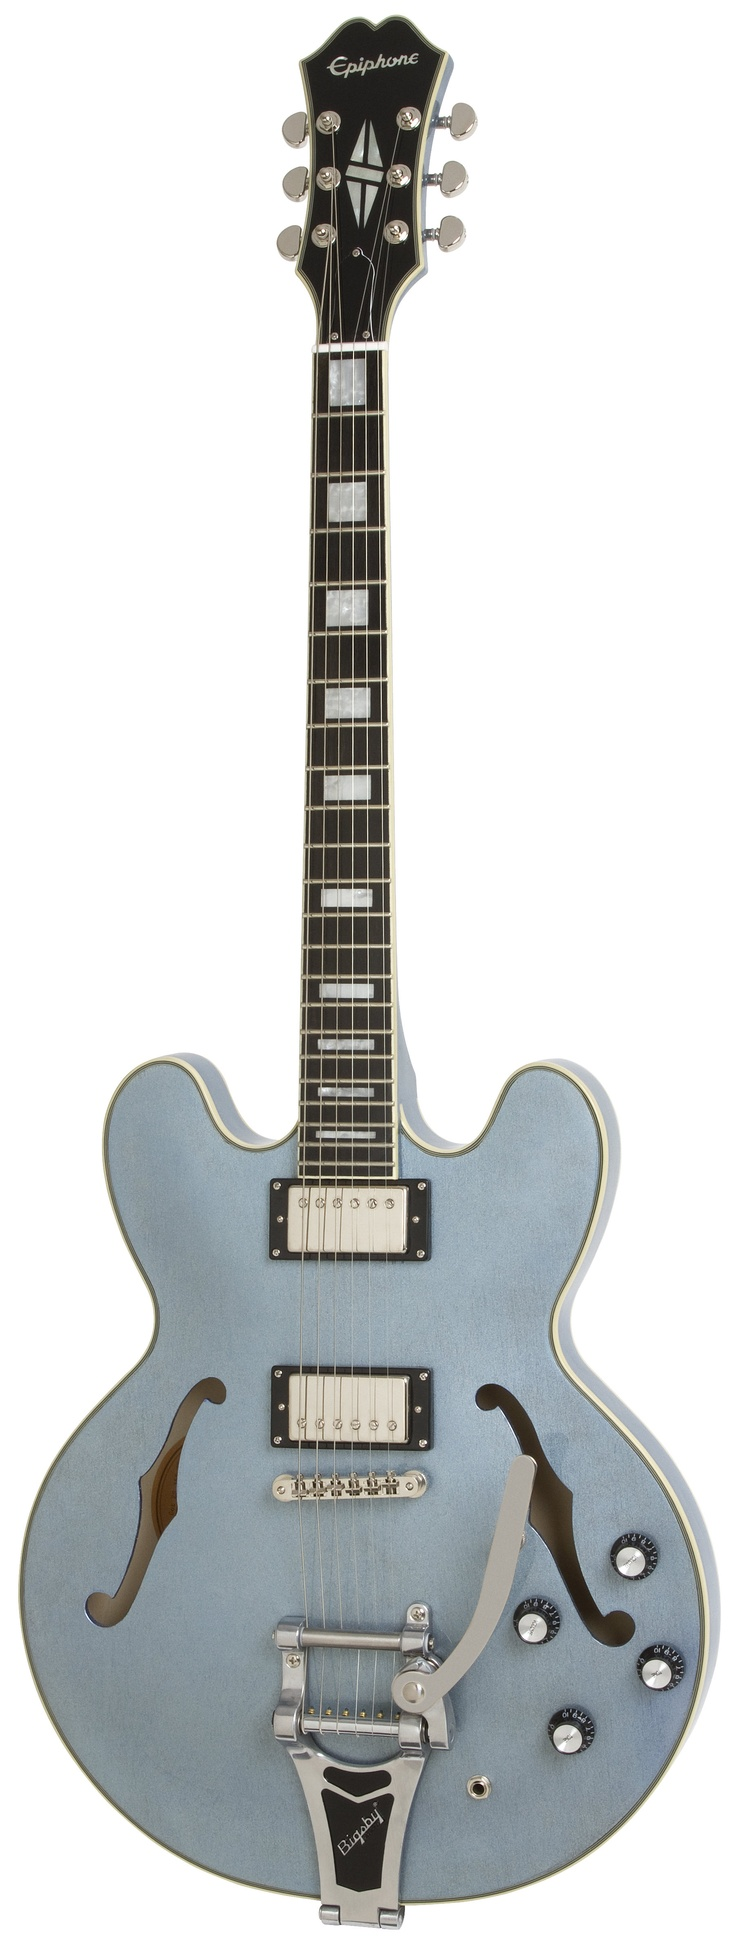 It will be mine, oh yes . . . ltd ed Epiphone ES-355 in Pelham Blue!